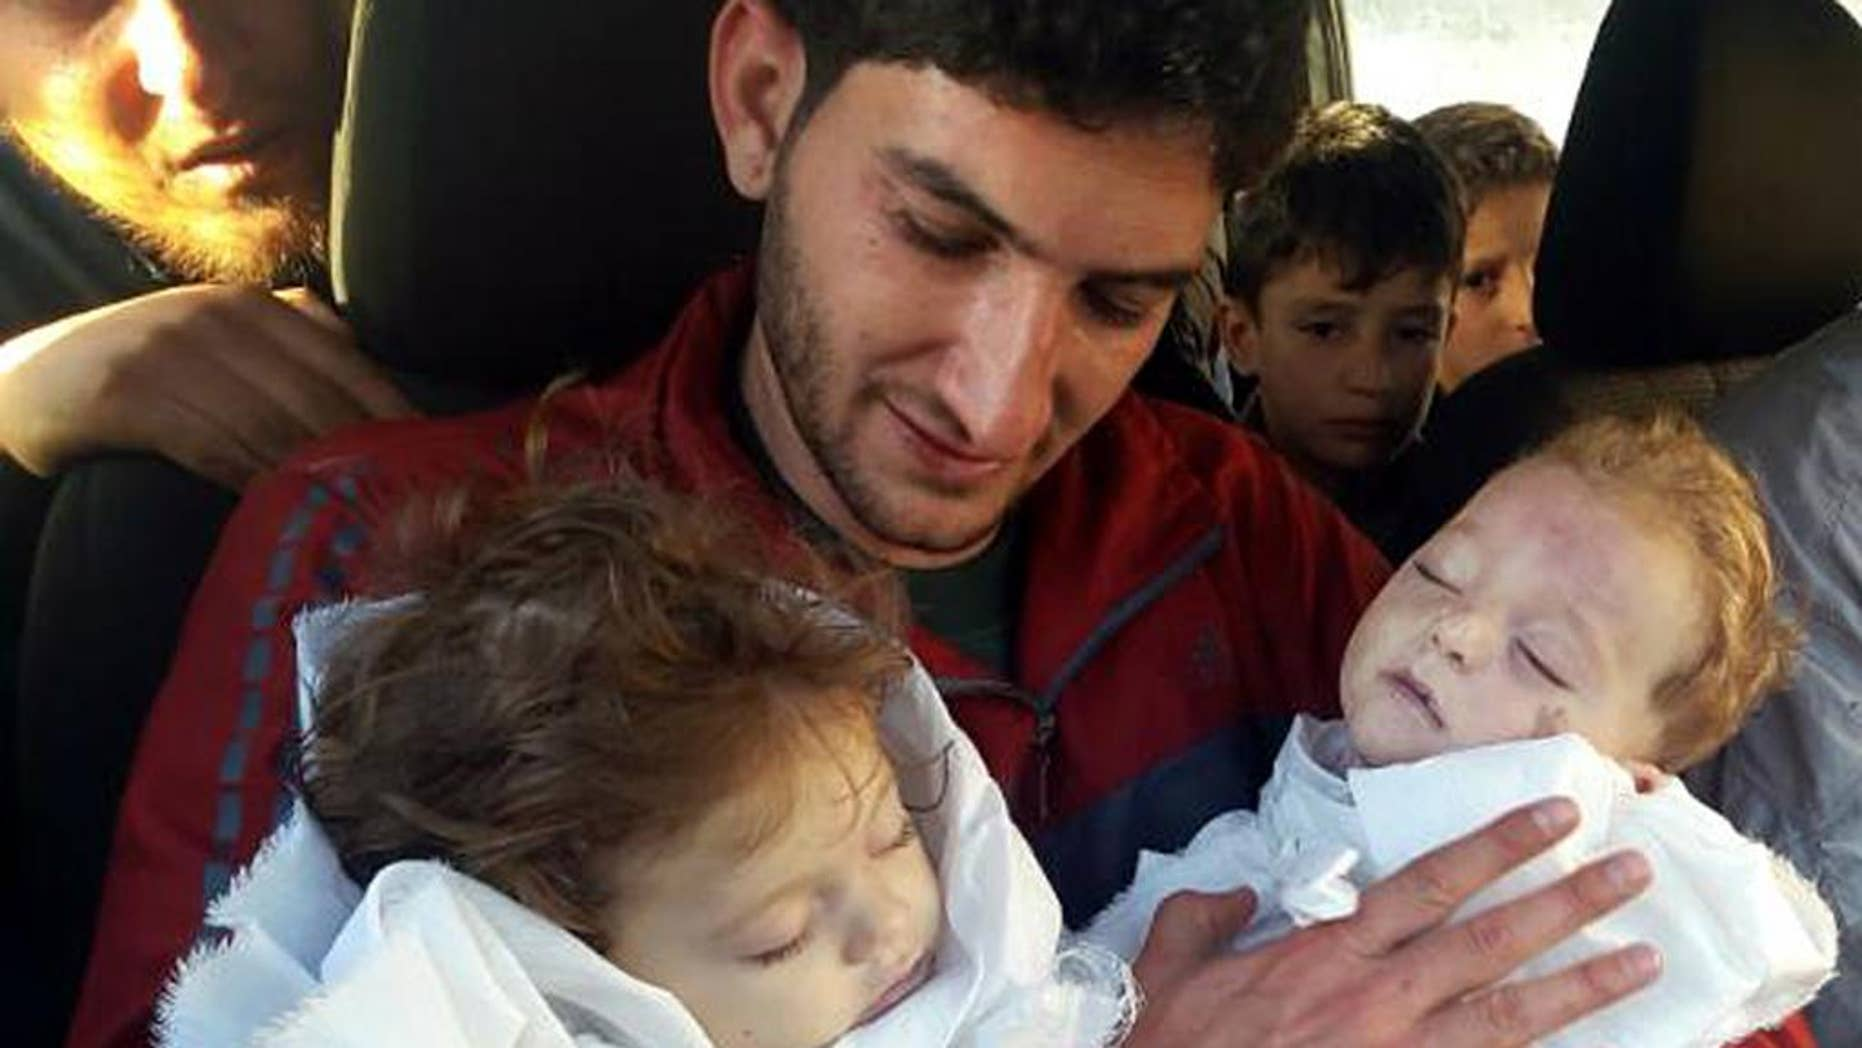 FILE - In this Tuesday, April 4, 2017, file photo, Abdul-Hamid Alyousef holds his twin babies who were killed by a chemical weapons attack, in Khan Sheikhoun in the northern province of Idlib, Syria. Alyousef also lost his wife, two brothers, nephews and many other family members in the attack that claimed scores of his relatives. New evidence presented by Human Rights Watch on Monday, May 1, indicates that the Syrian government used suspected nerve agents in four chemical weapons attacks since December including this one. (Alaa Alyousef via AP, File)